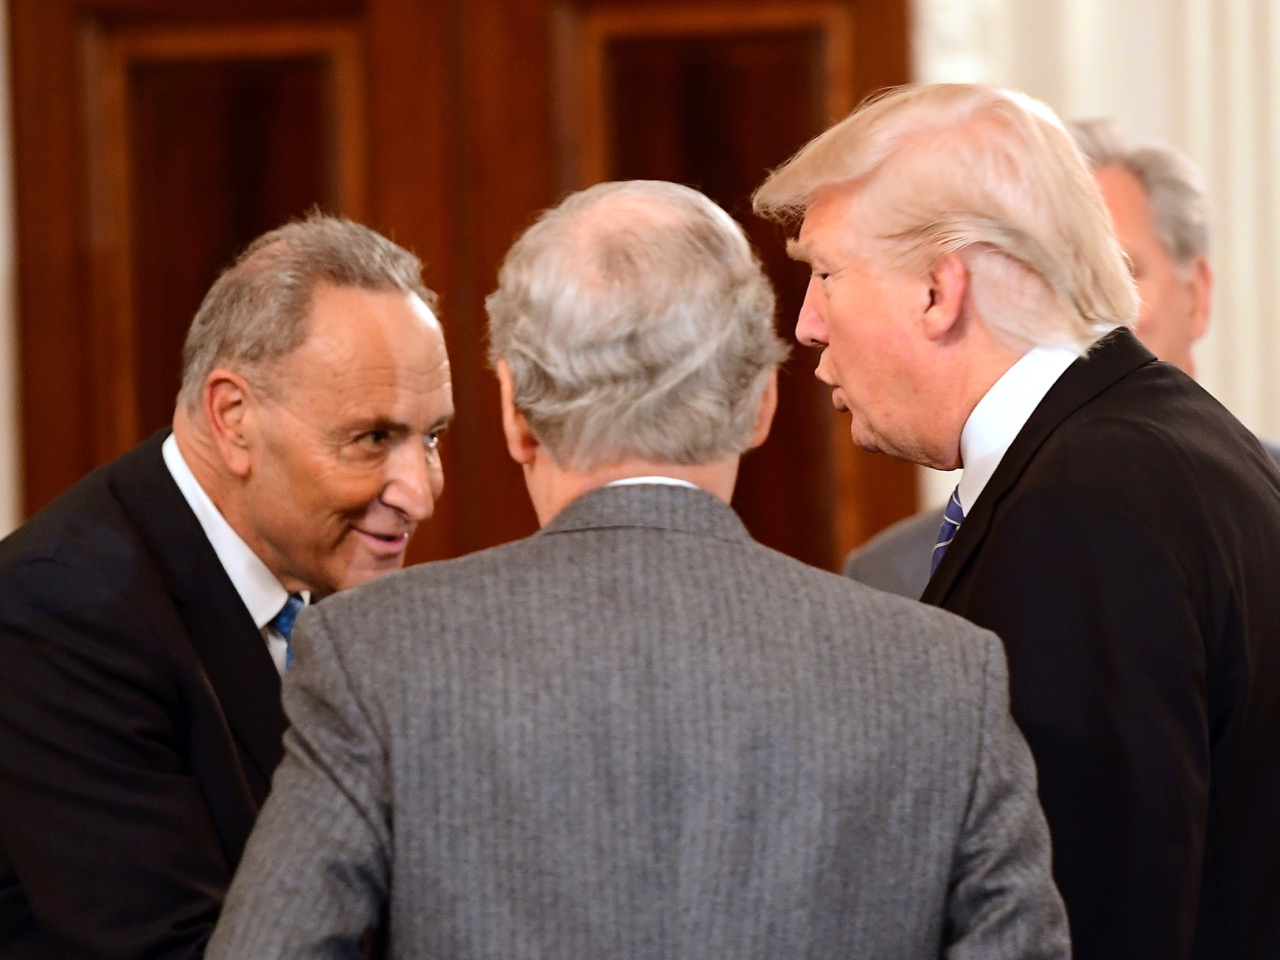 Trump Hosts a Congressional Leadership Reception